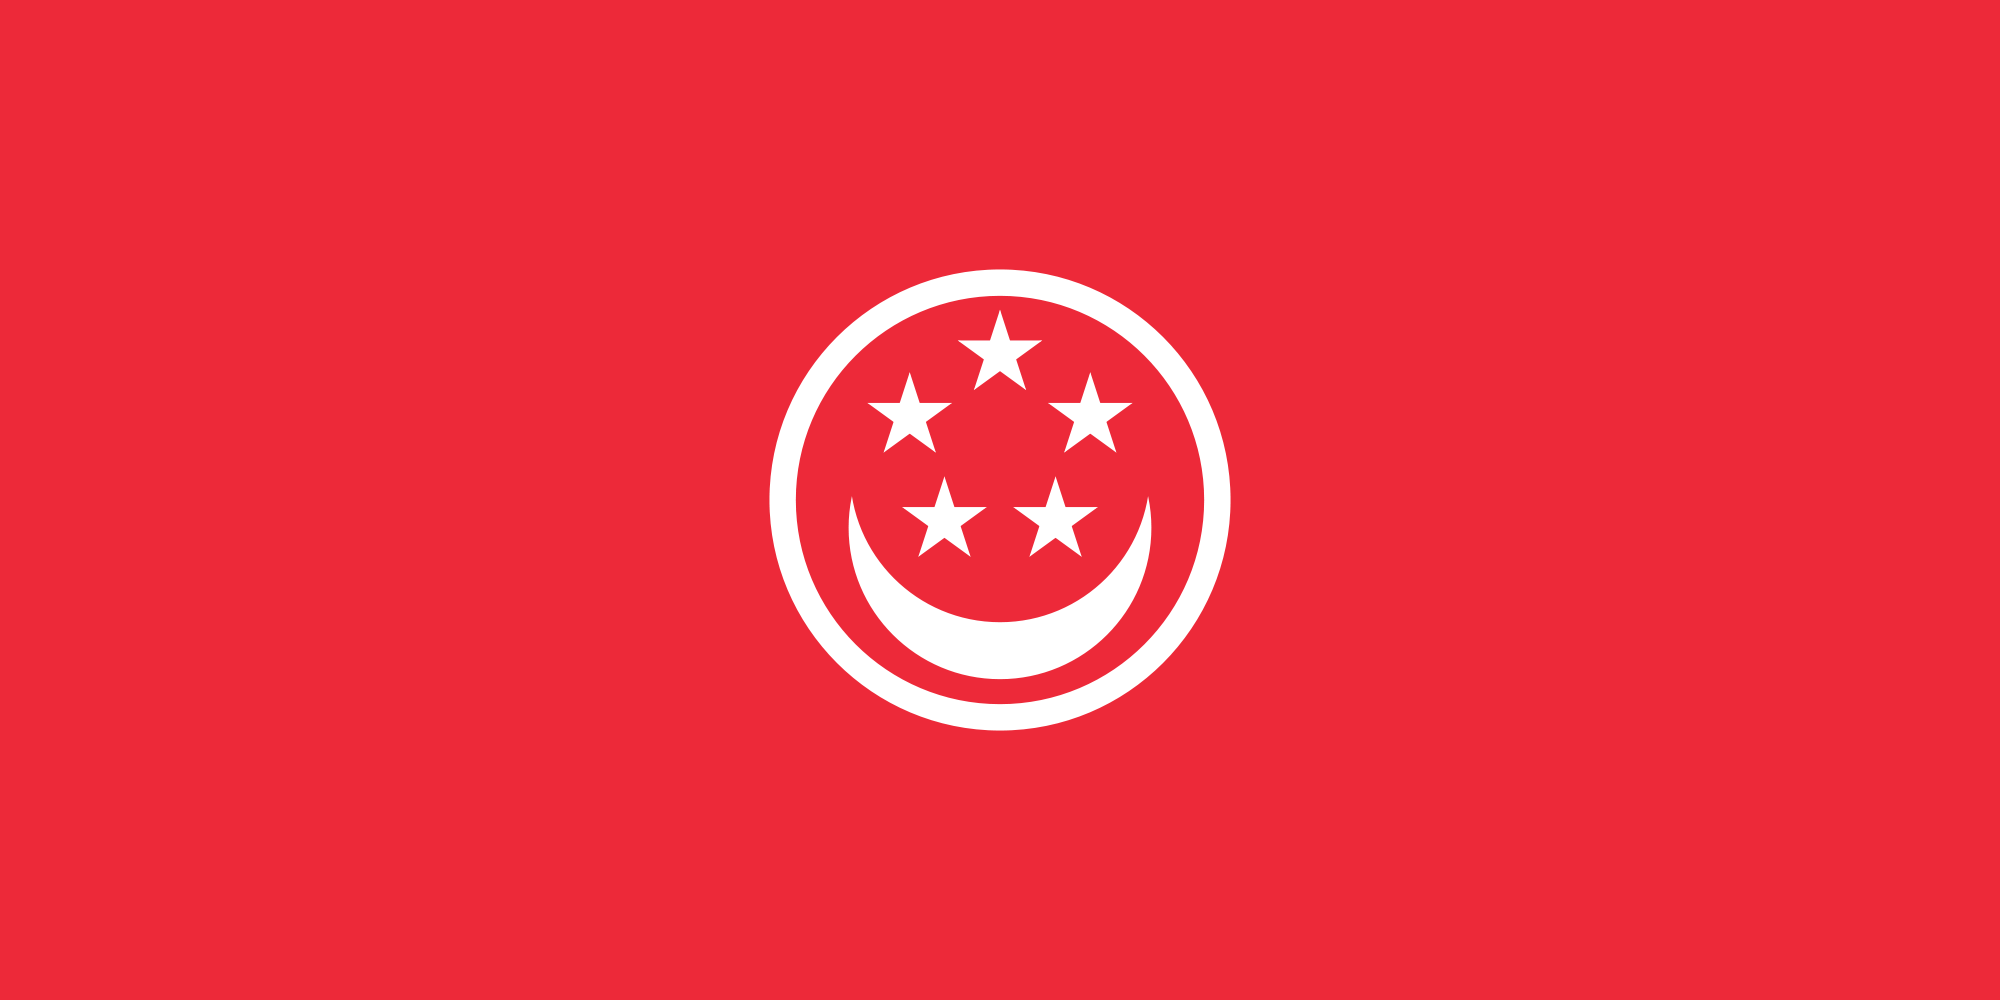 Singapore (Red Ensign)